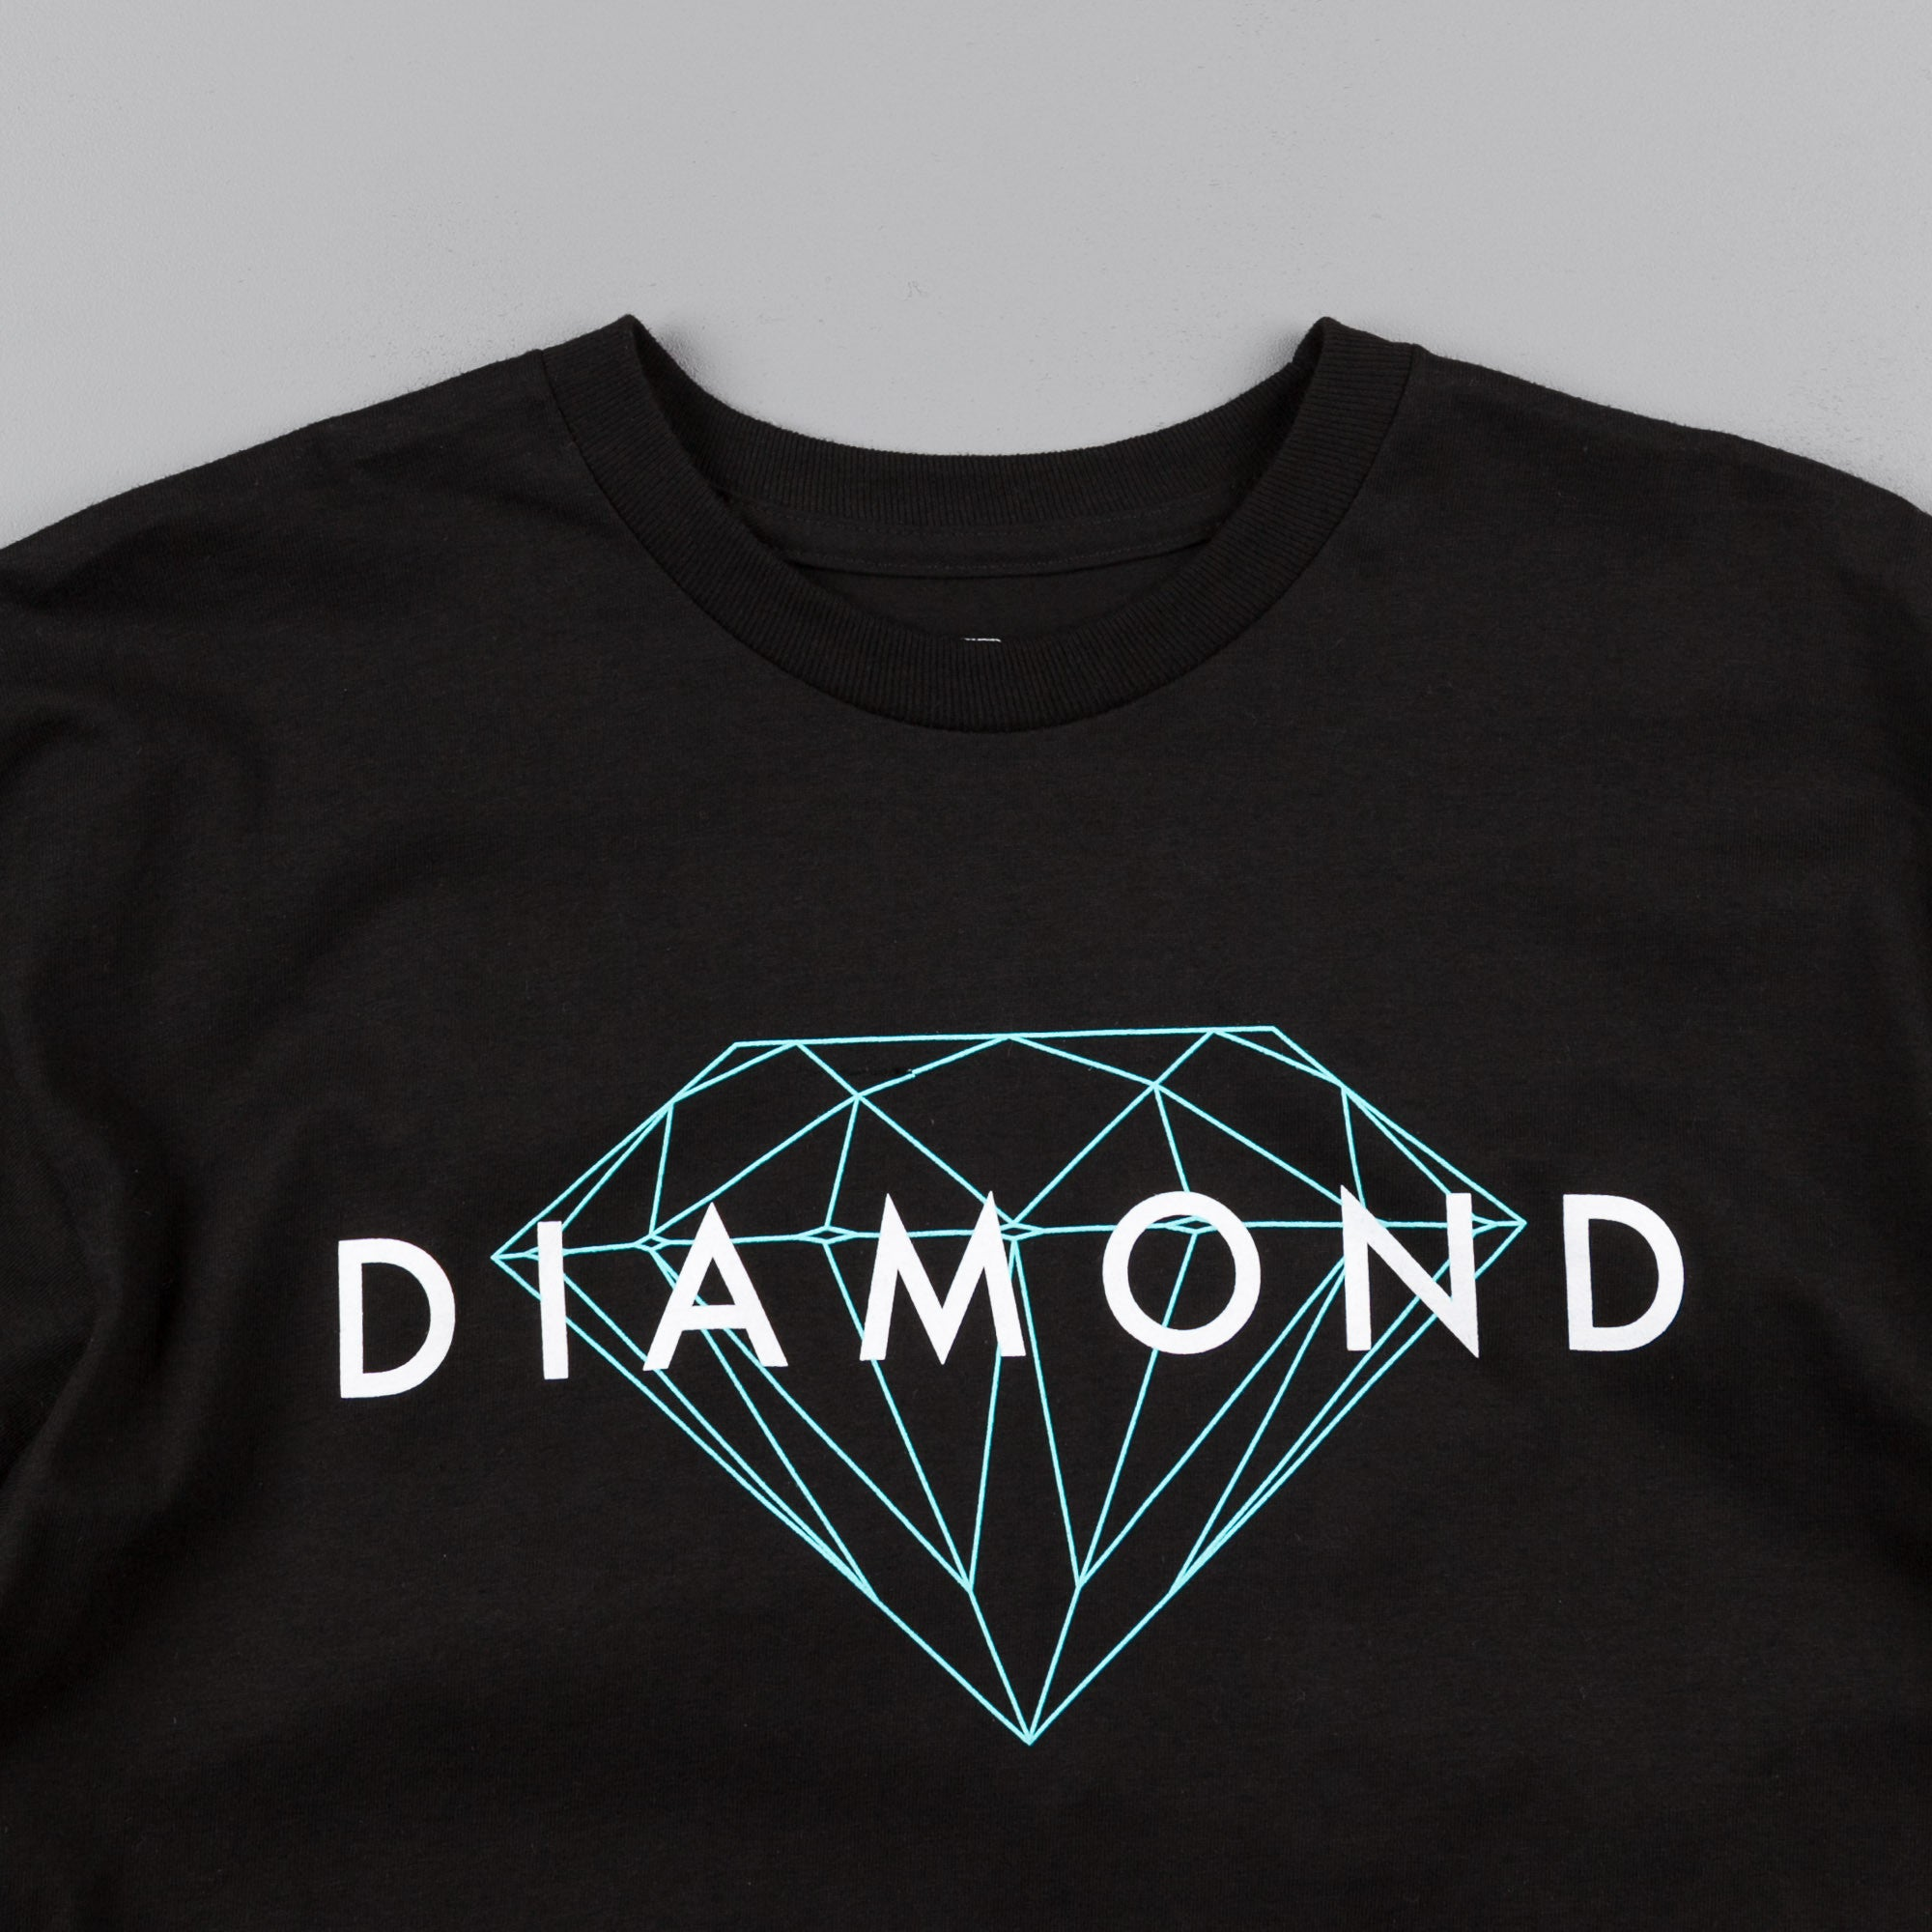 Diamond Brilliant Diamond T-Shirt - Black